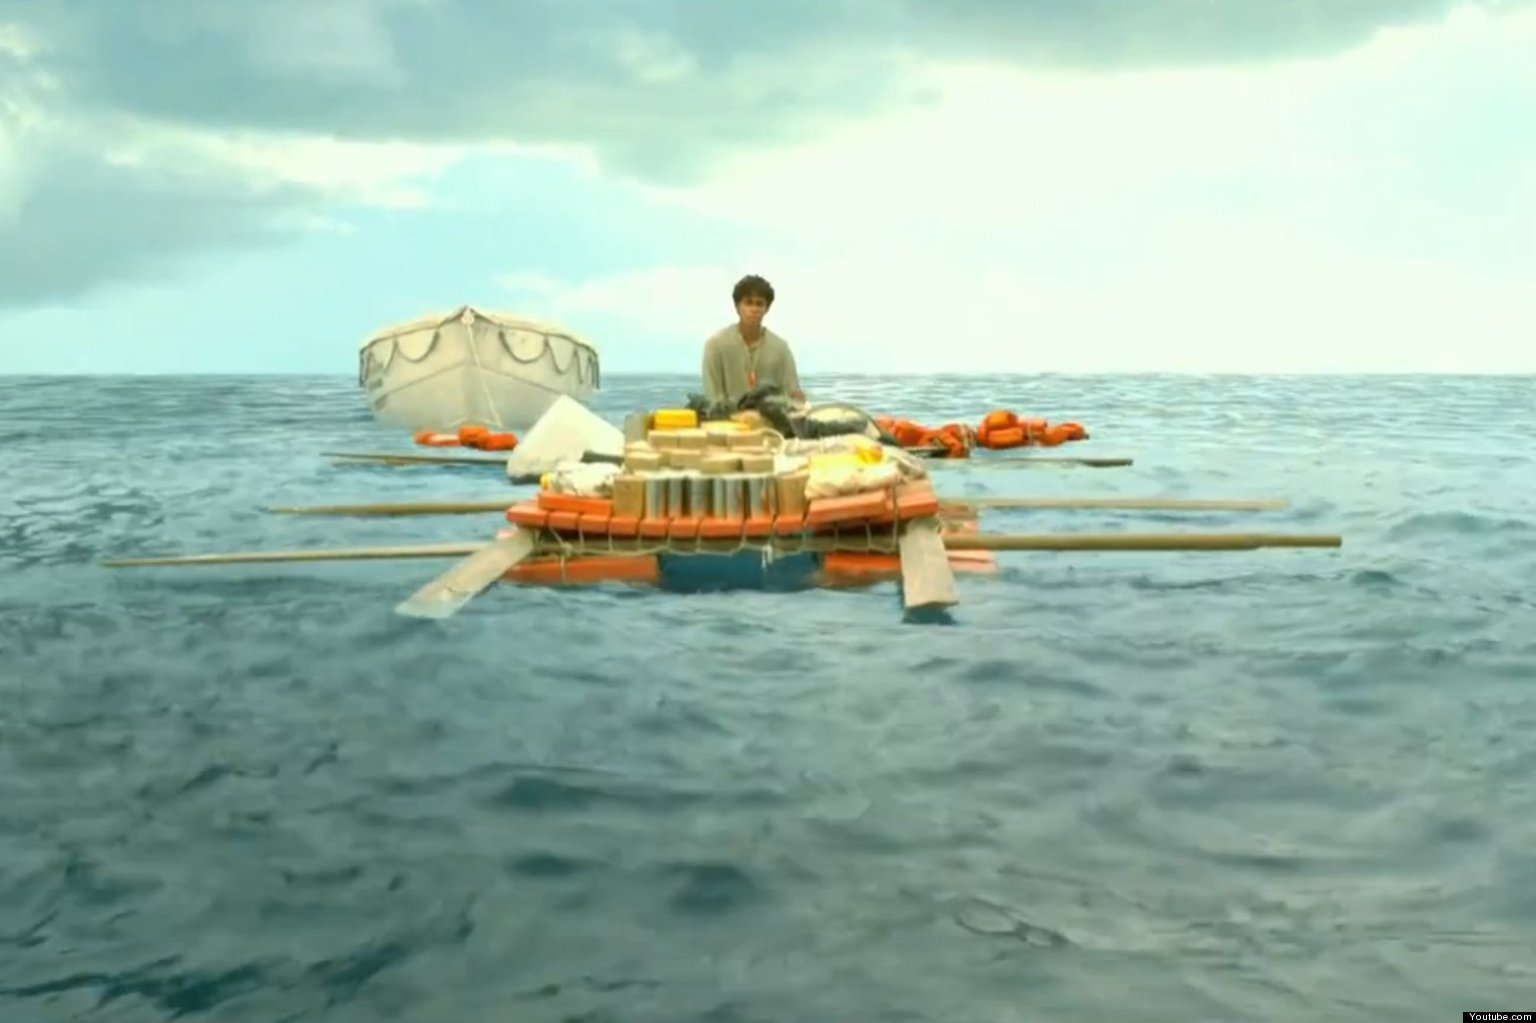 a psychological analysis of the life of pi a movie by ang lee In his 2012 movie adaptation of life of pi, director ang lee takes martel's work more seriously than one takes the sats, and he delivers a movie as close to the spirit and text of the book as he possibly can.